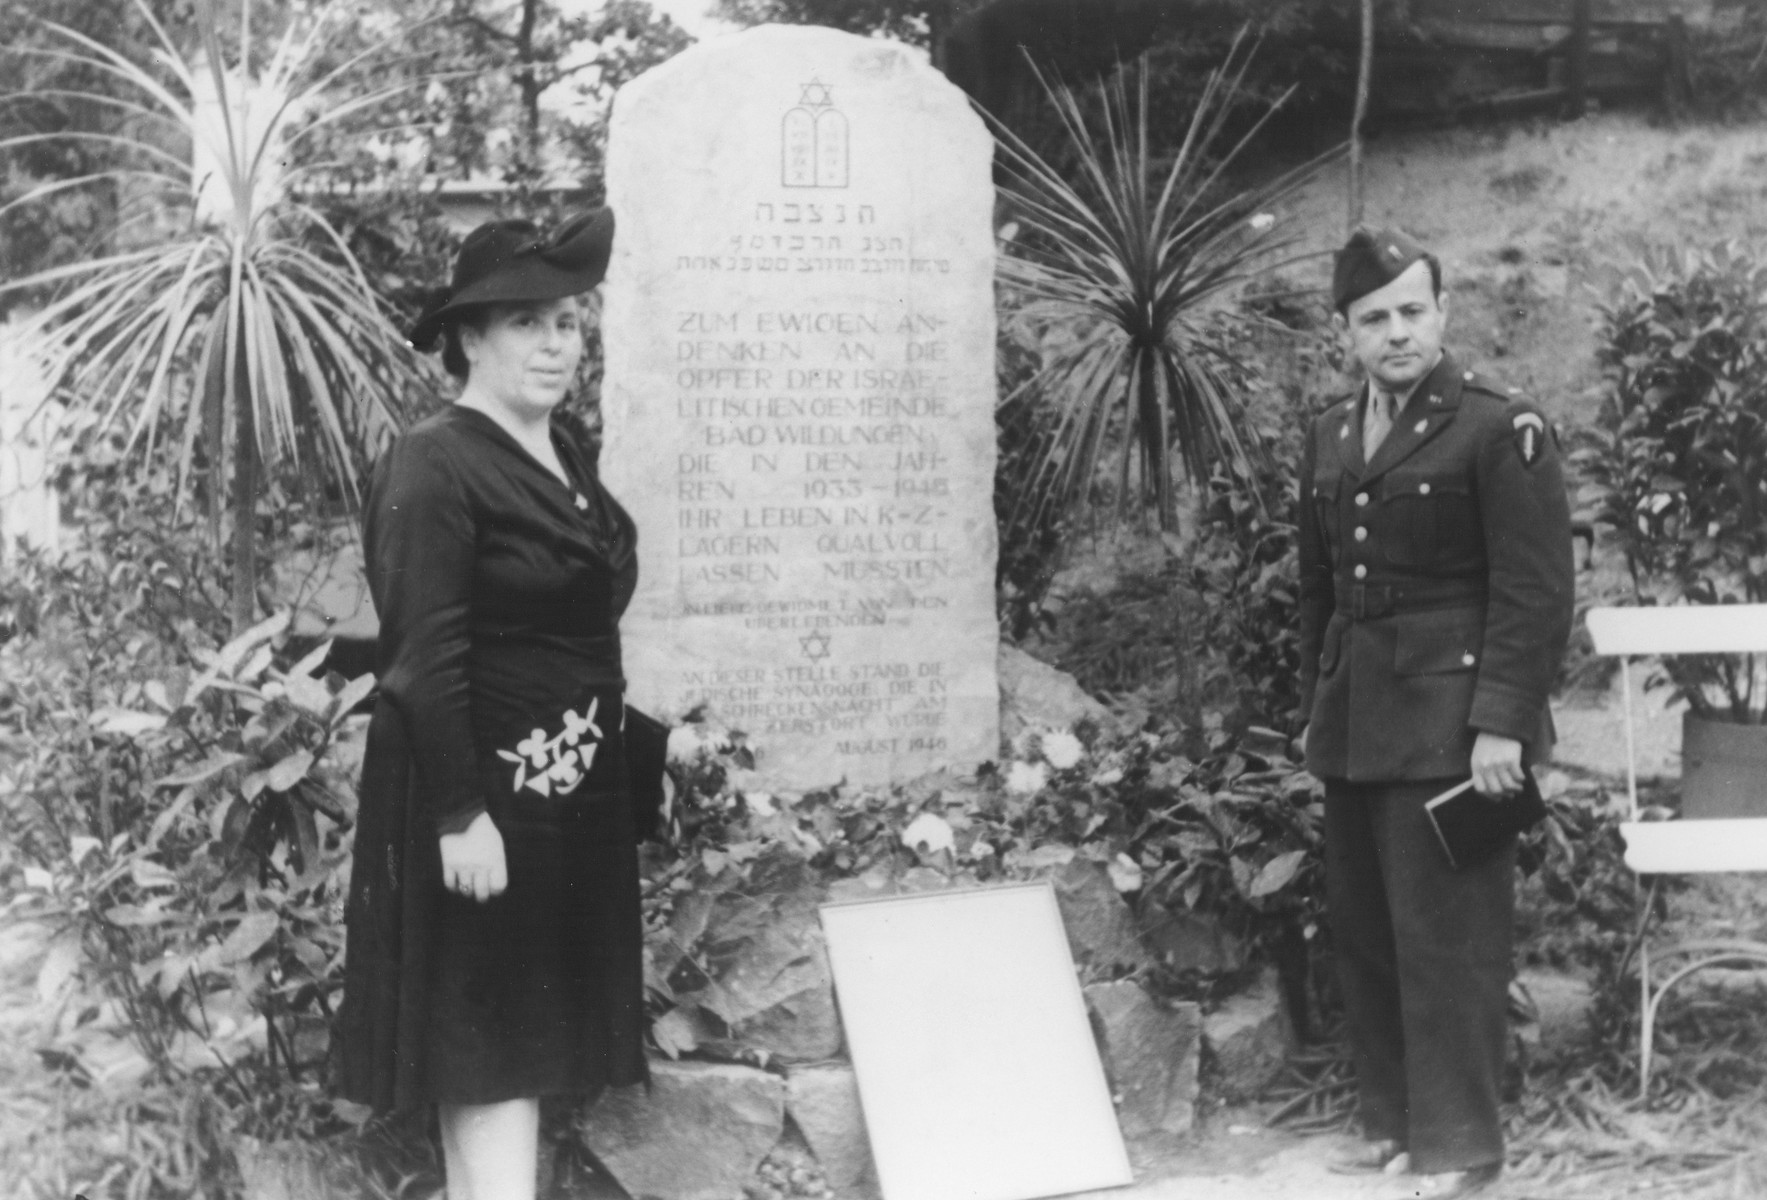 A memorial stone to the Jewish victims of Nazism from Bad Wildungen is unveiled at a ceremony.    The stone was erected on the site of the former synagogue that was destroyed on Kristallnacht.